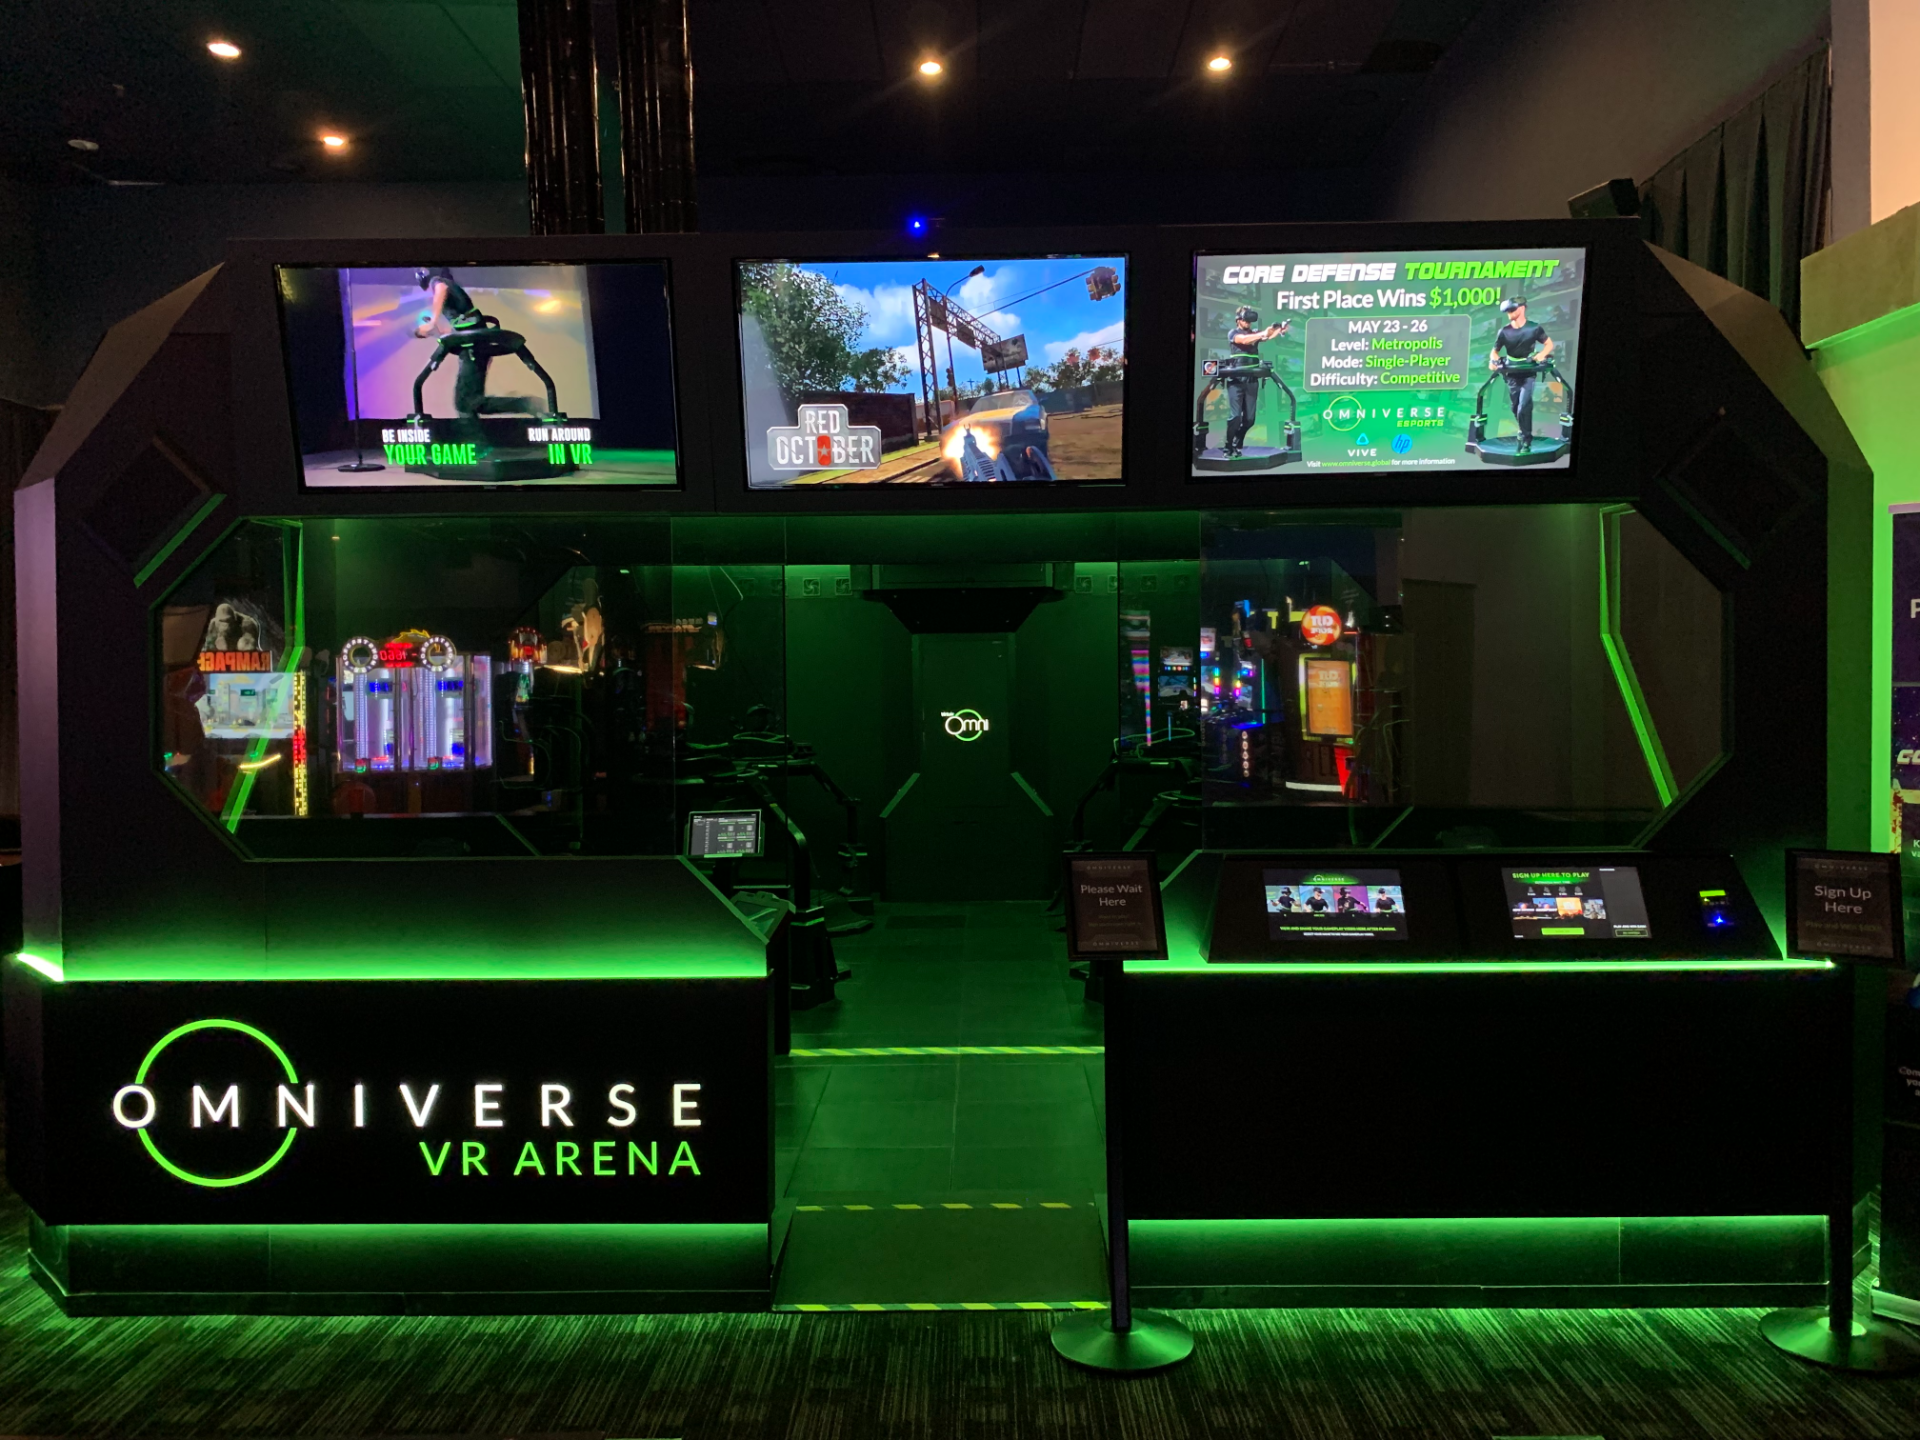 Virtuix Brings VR Esports to Dave and Buster's with Omniverse VR Arena